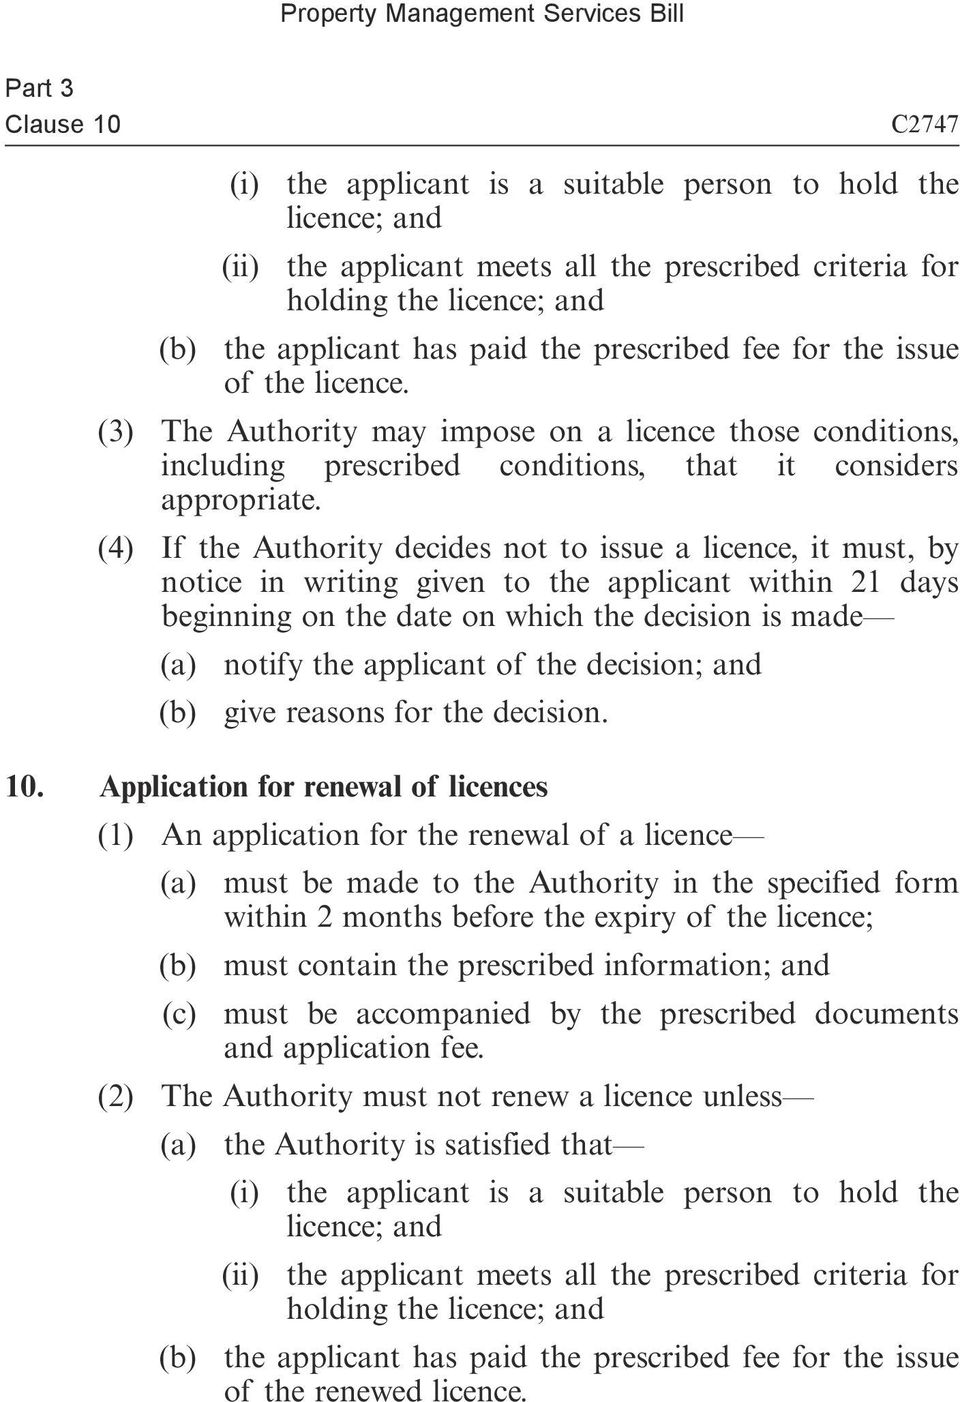 (4) If the Authority decides not to issue a licence, it must, by notice in writing given to the applicant within 21 days beginning on the date on which the decision is made (a) notify the applicant